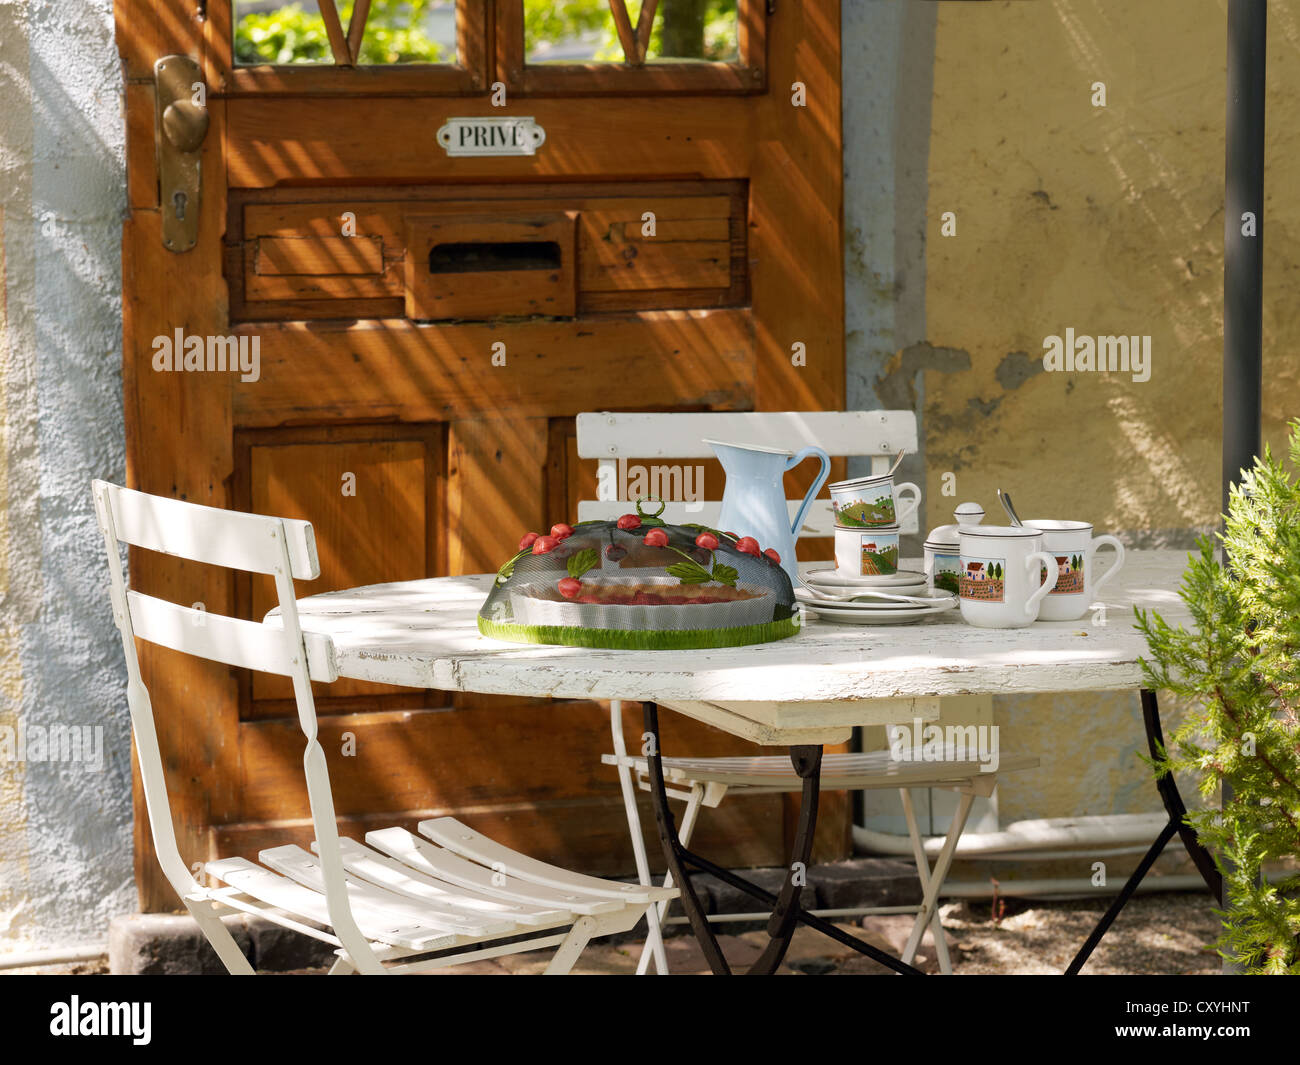 Summerly, decoratively laid coffee table - Stock Image